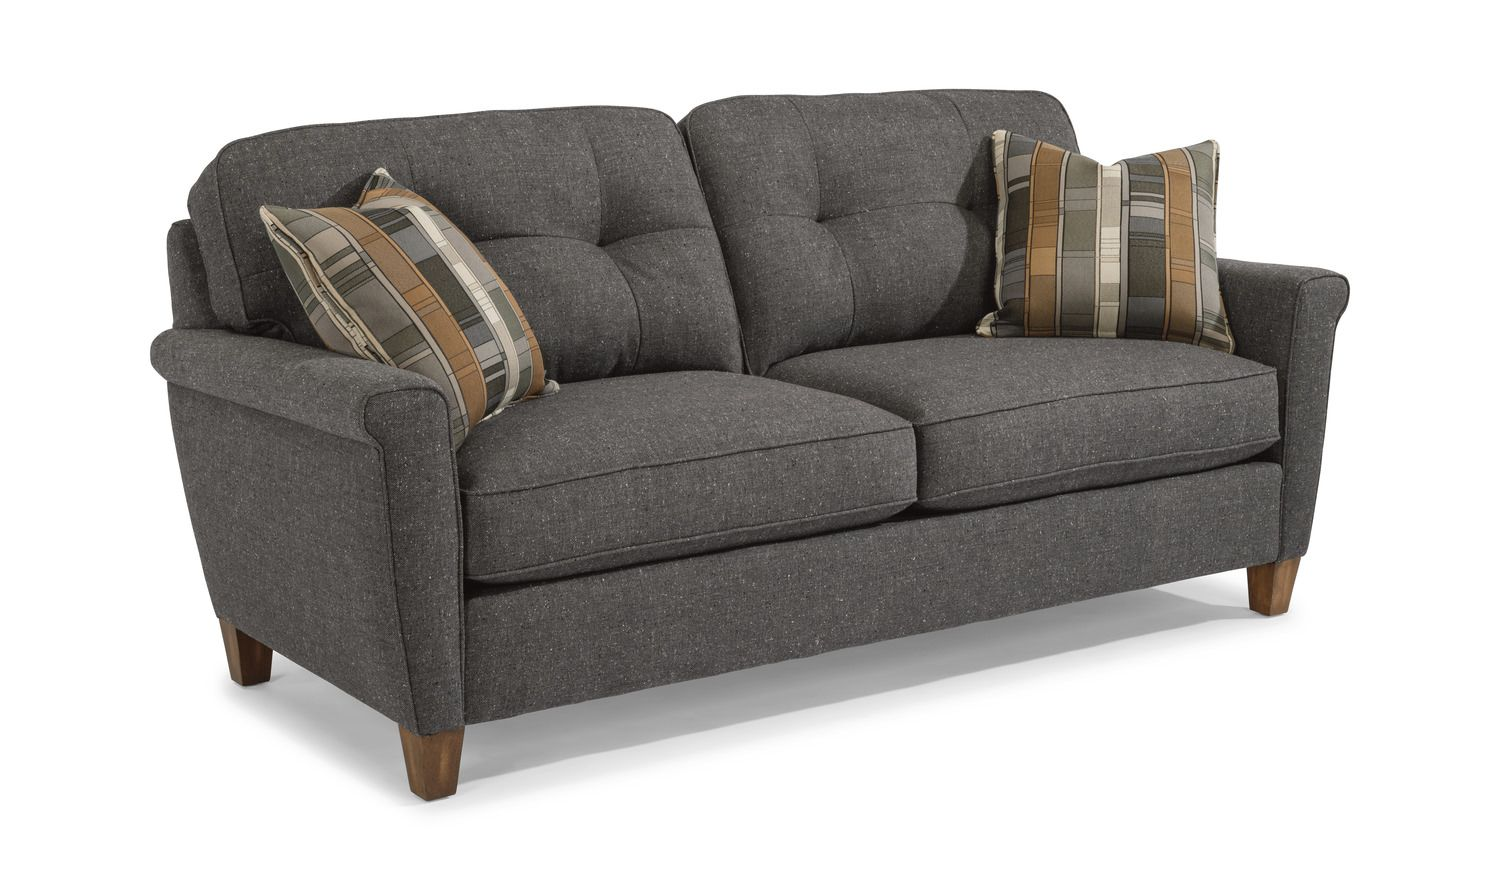 beaumont sofa bjs best rated sofas turtle furniture dreaming pinterest fabric and